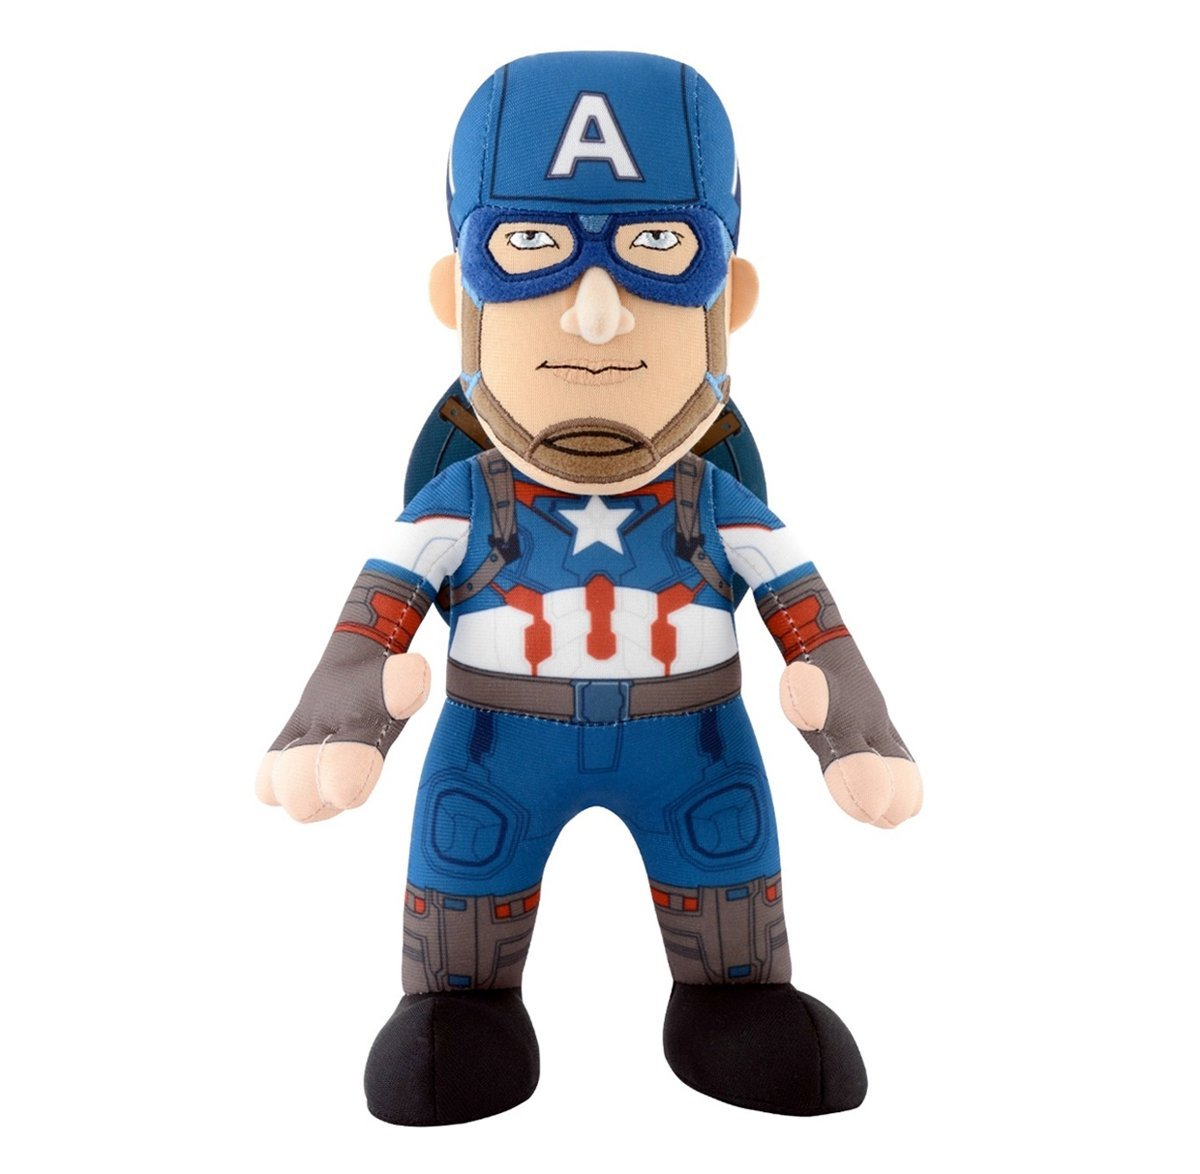 Marvels Captain America: Civil War Captain America 10 Plush Figure